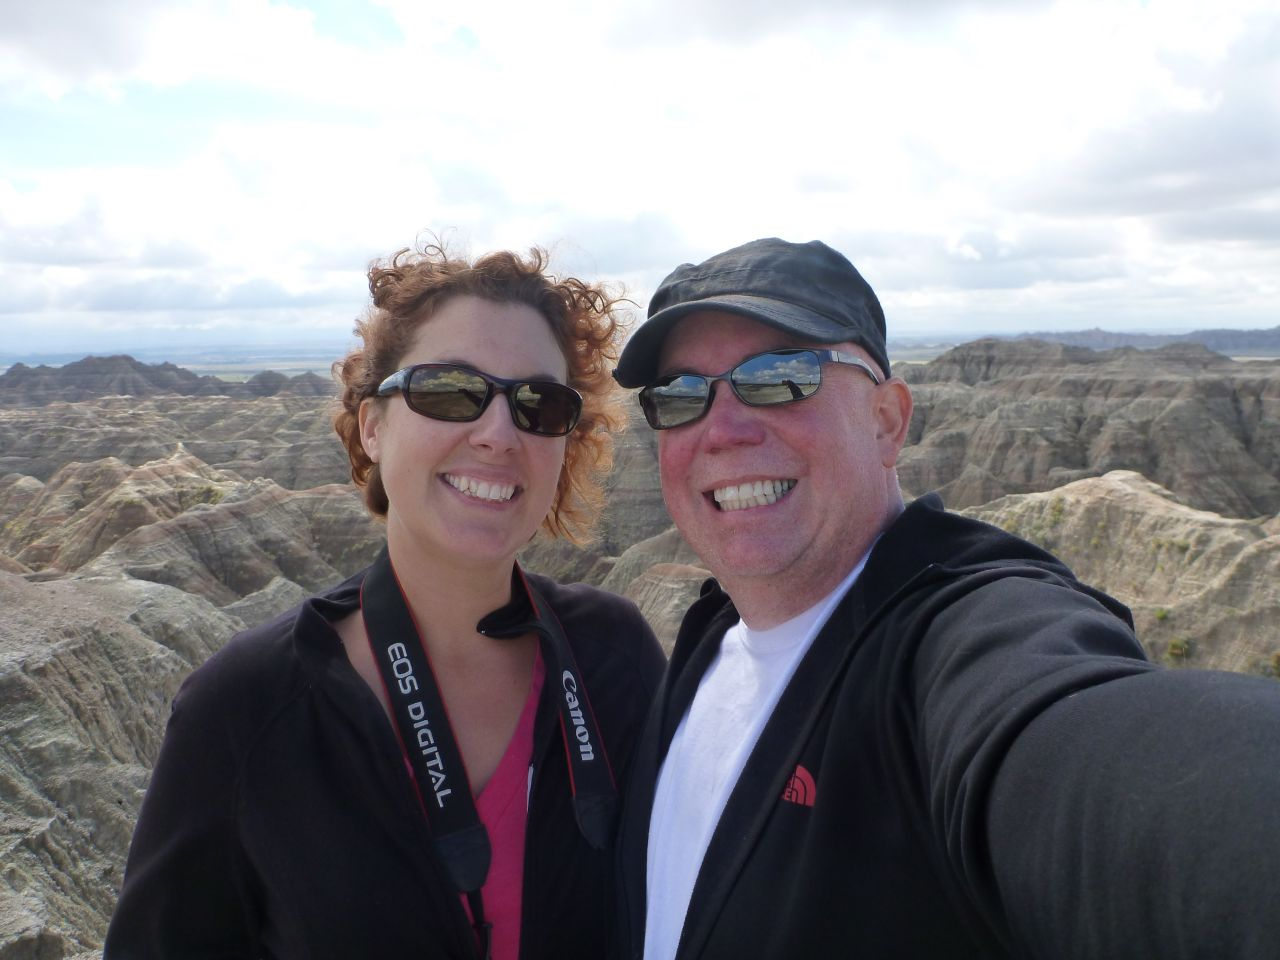 David and Brenda At The Badlands In South Dakota